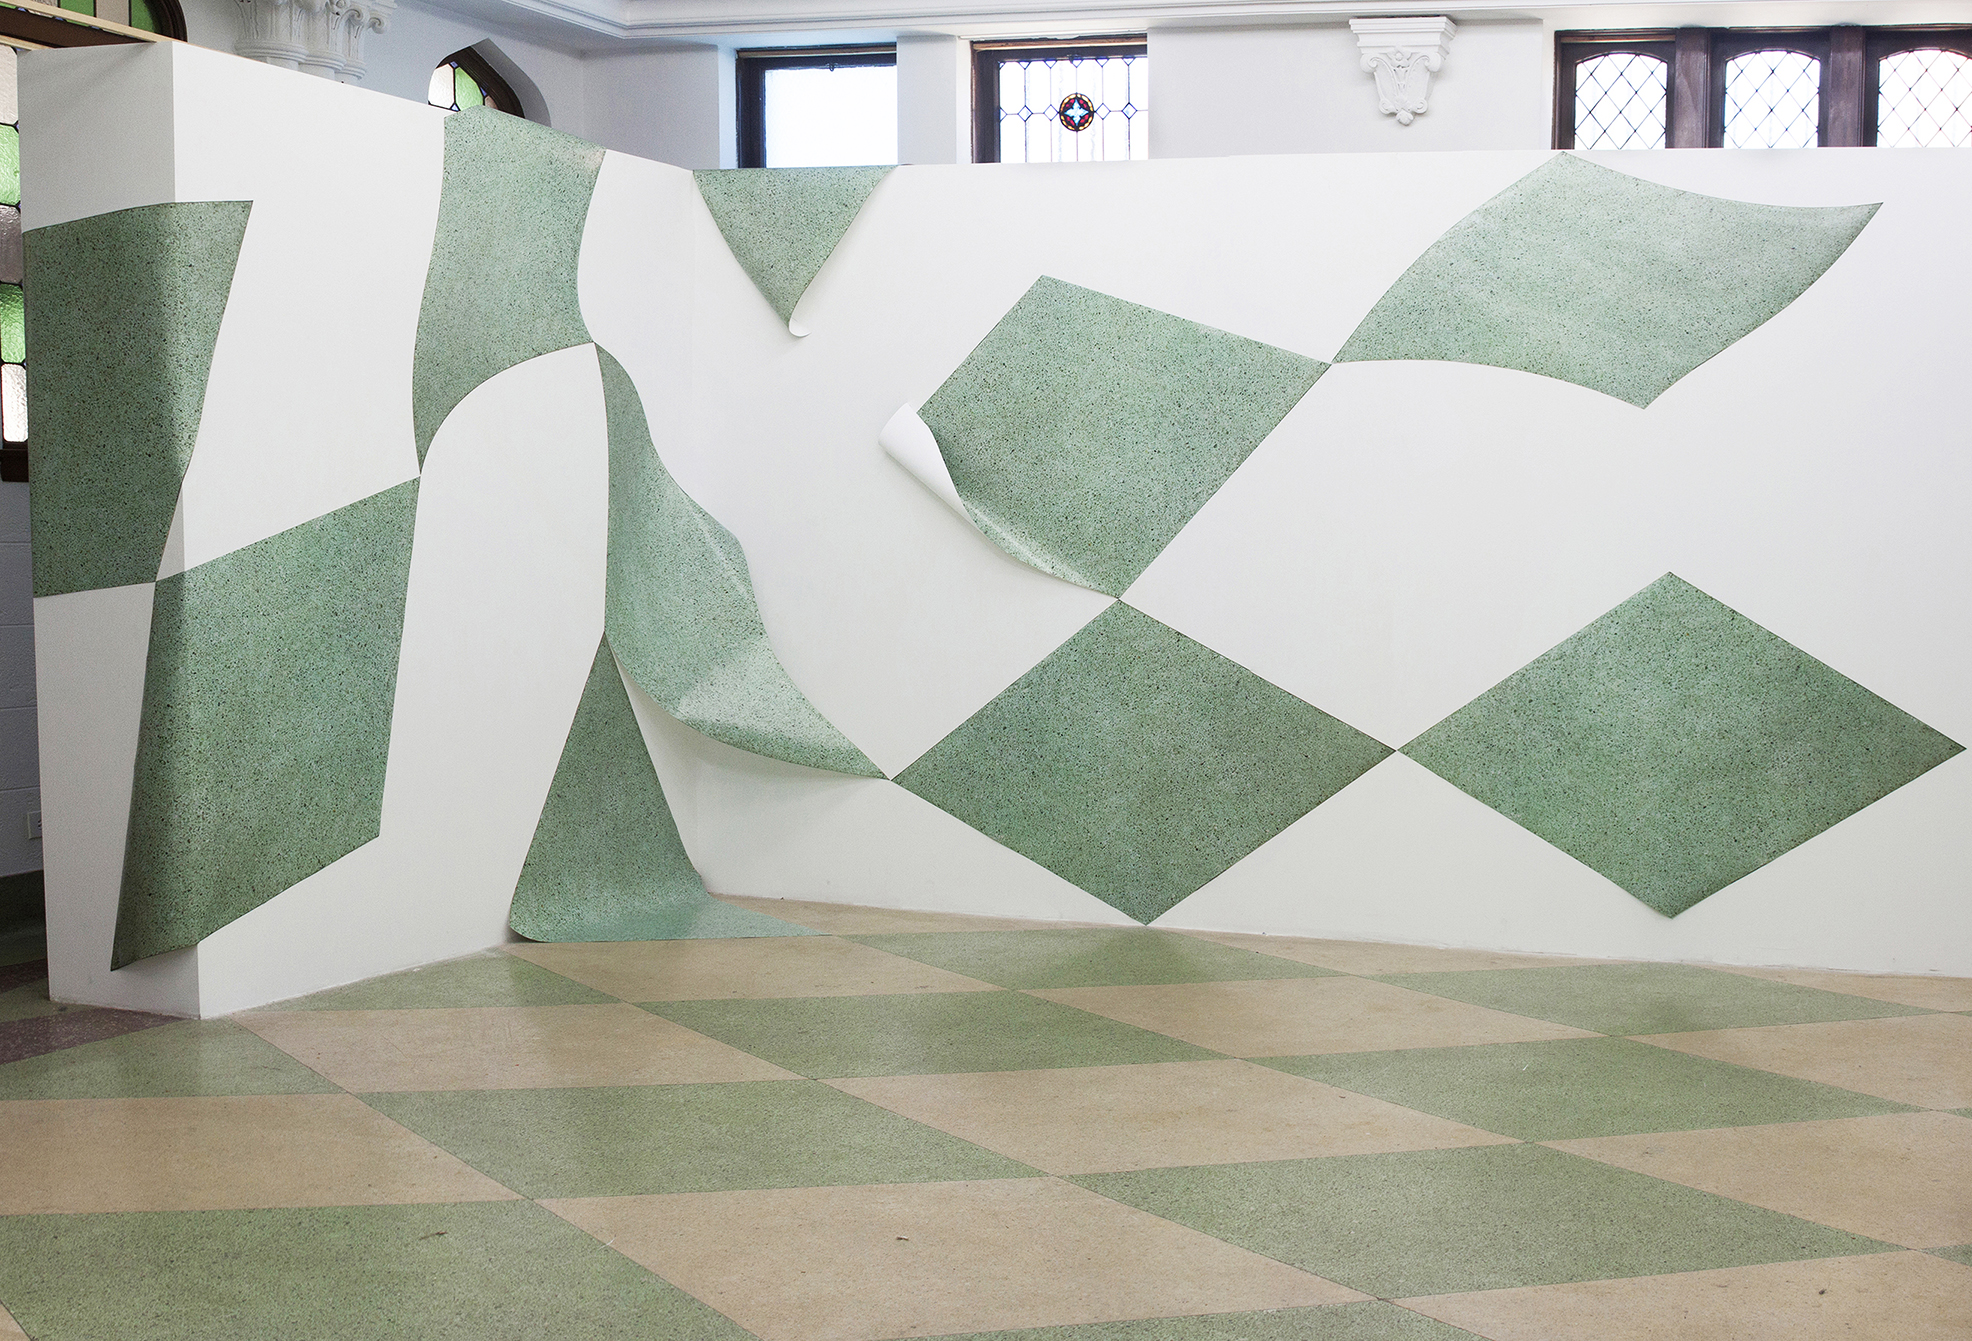 Marble, quartz, granite, glass, or other suitable materials , 2018. Temporary installation at ACRE Projects, Chicago, IL.